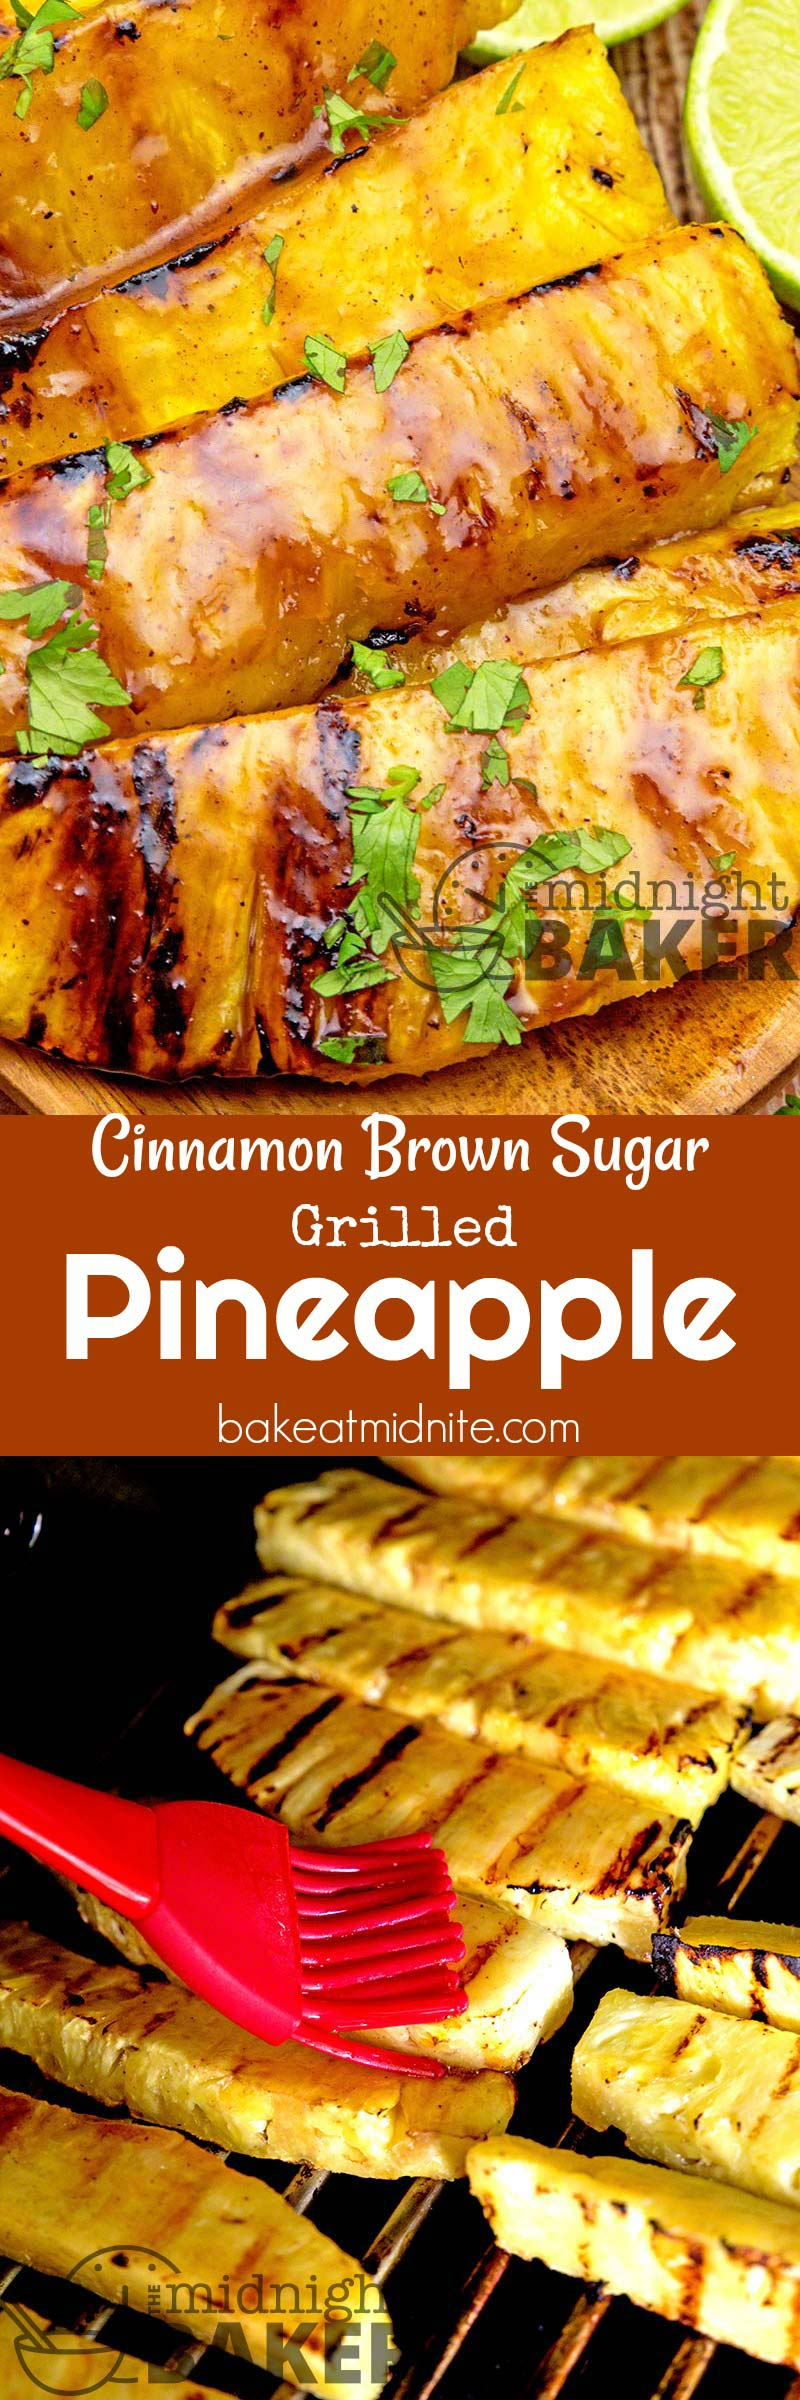 Pineapple gets even better when it's grilled with this great cinnamon brown sugar glaze